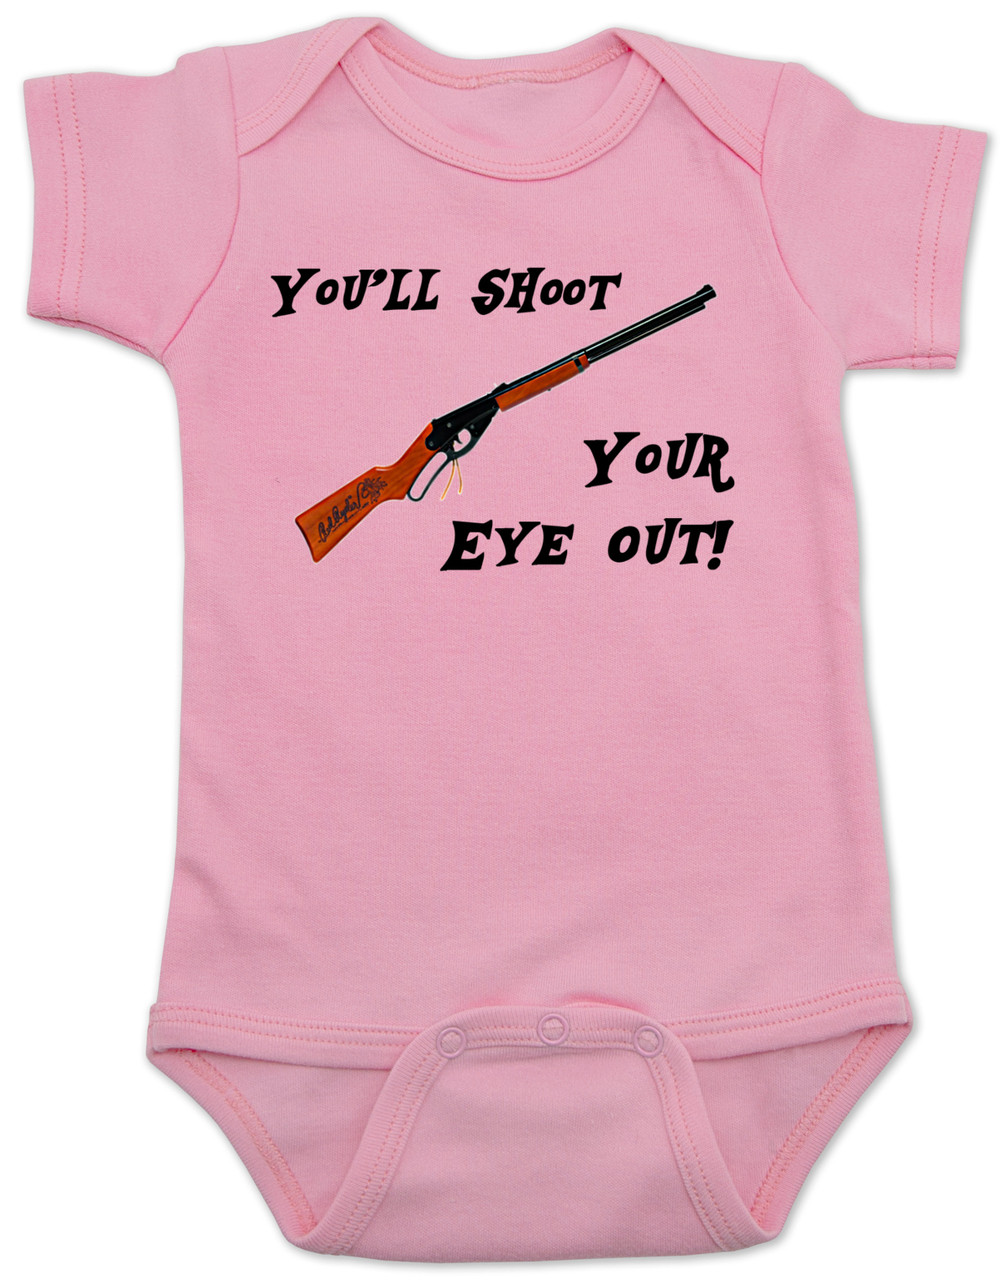 Shoot Your Eye Out Onesie Baby Going Home Outfit Christmas Coming Home Outfit The Christmas Story Onesie